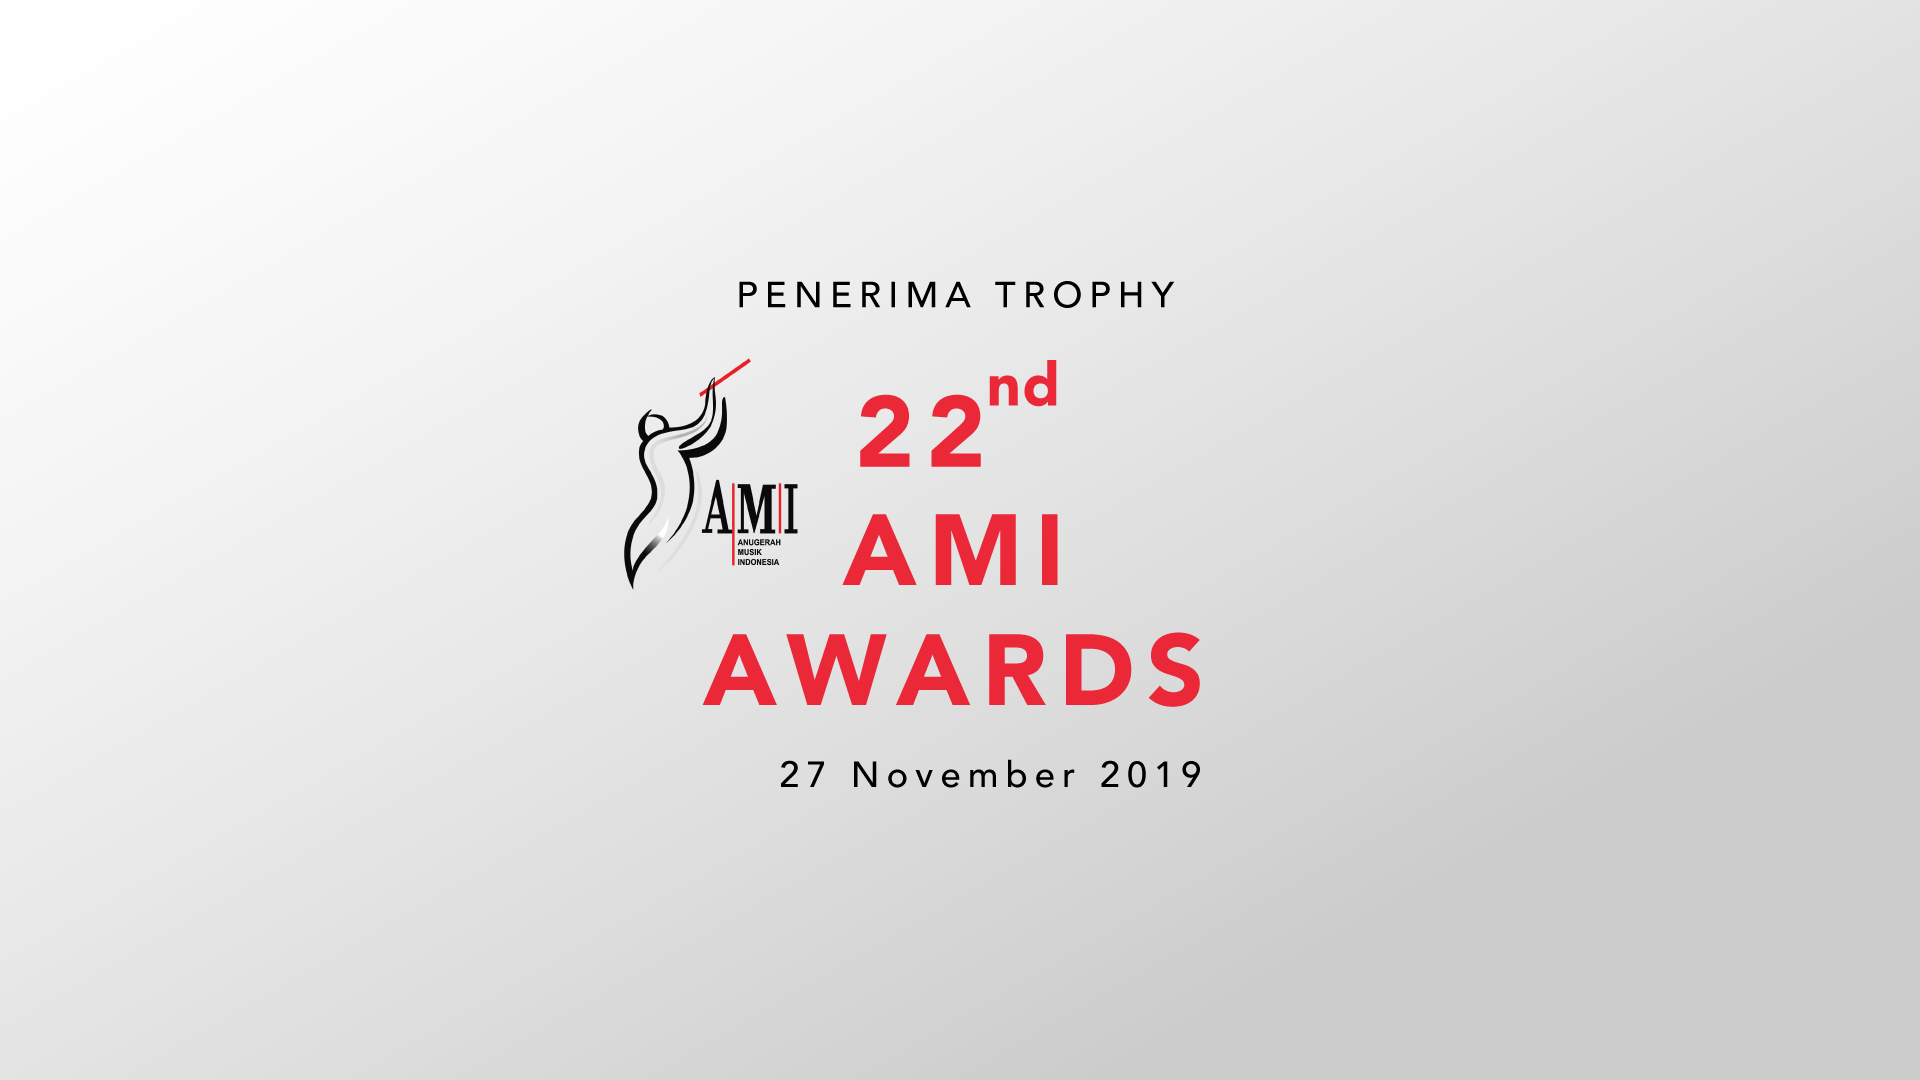 ami awards 2019